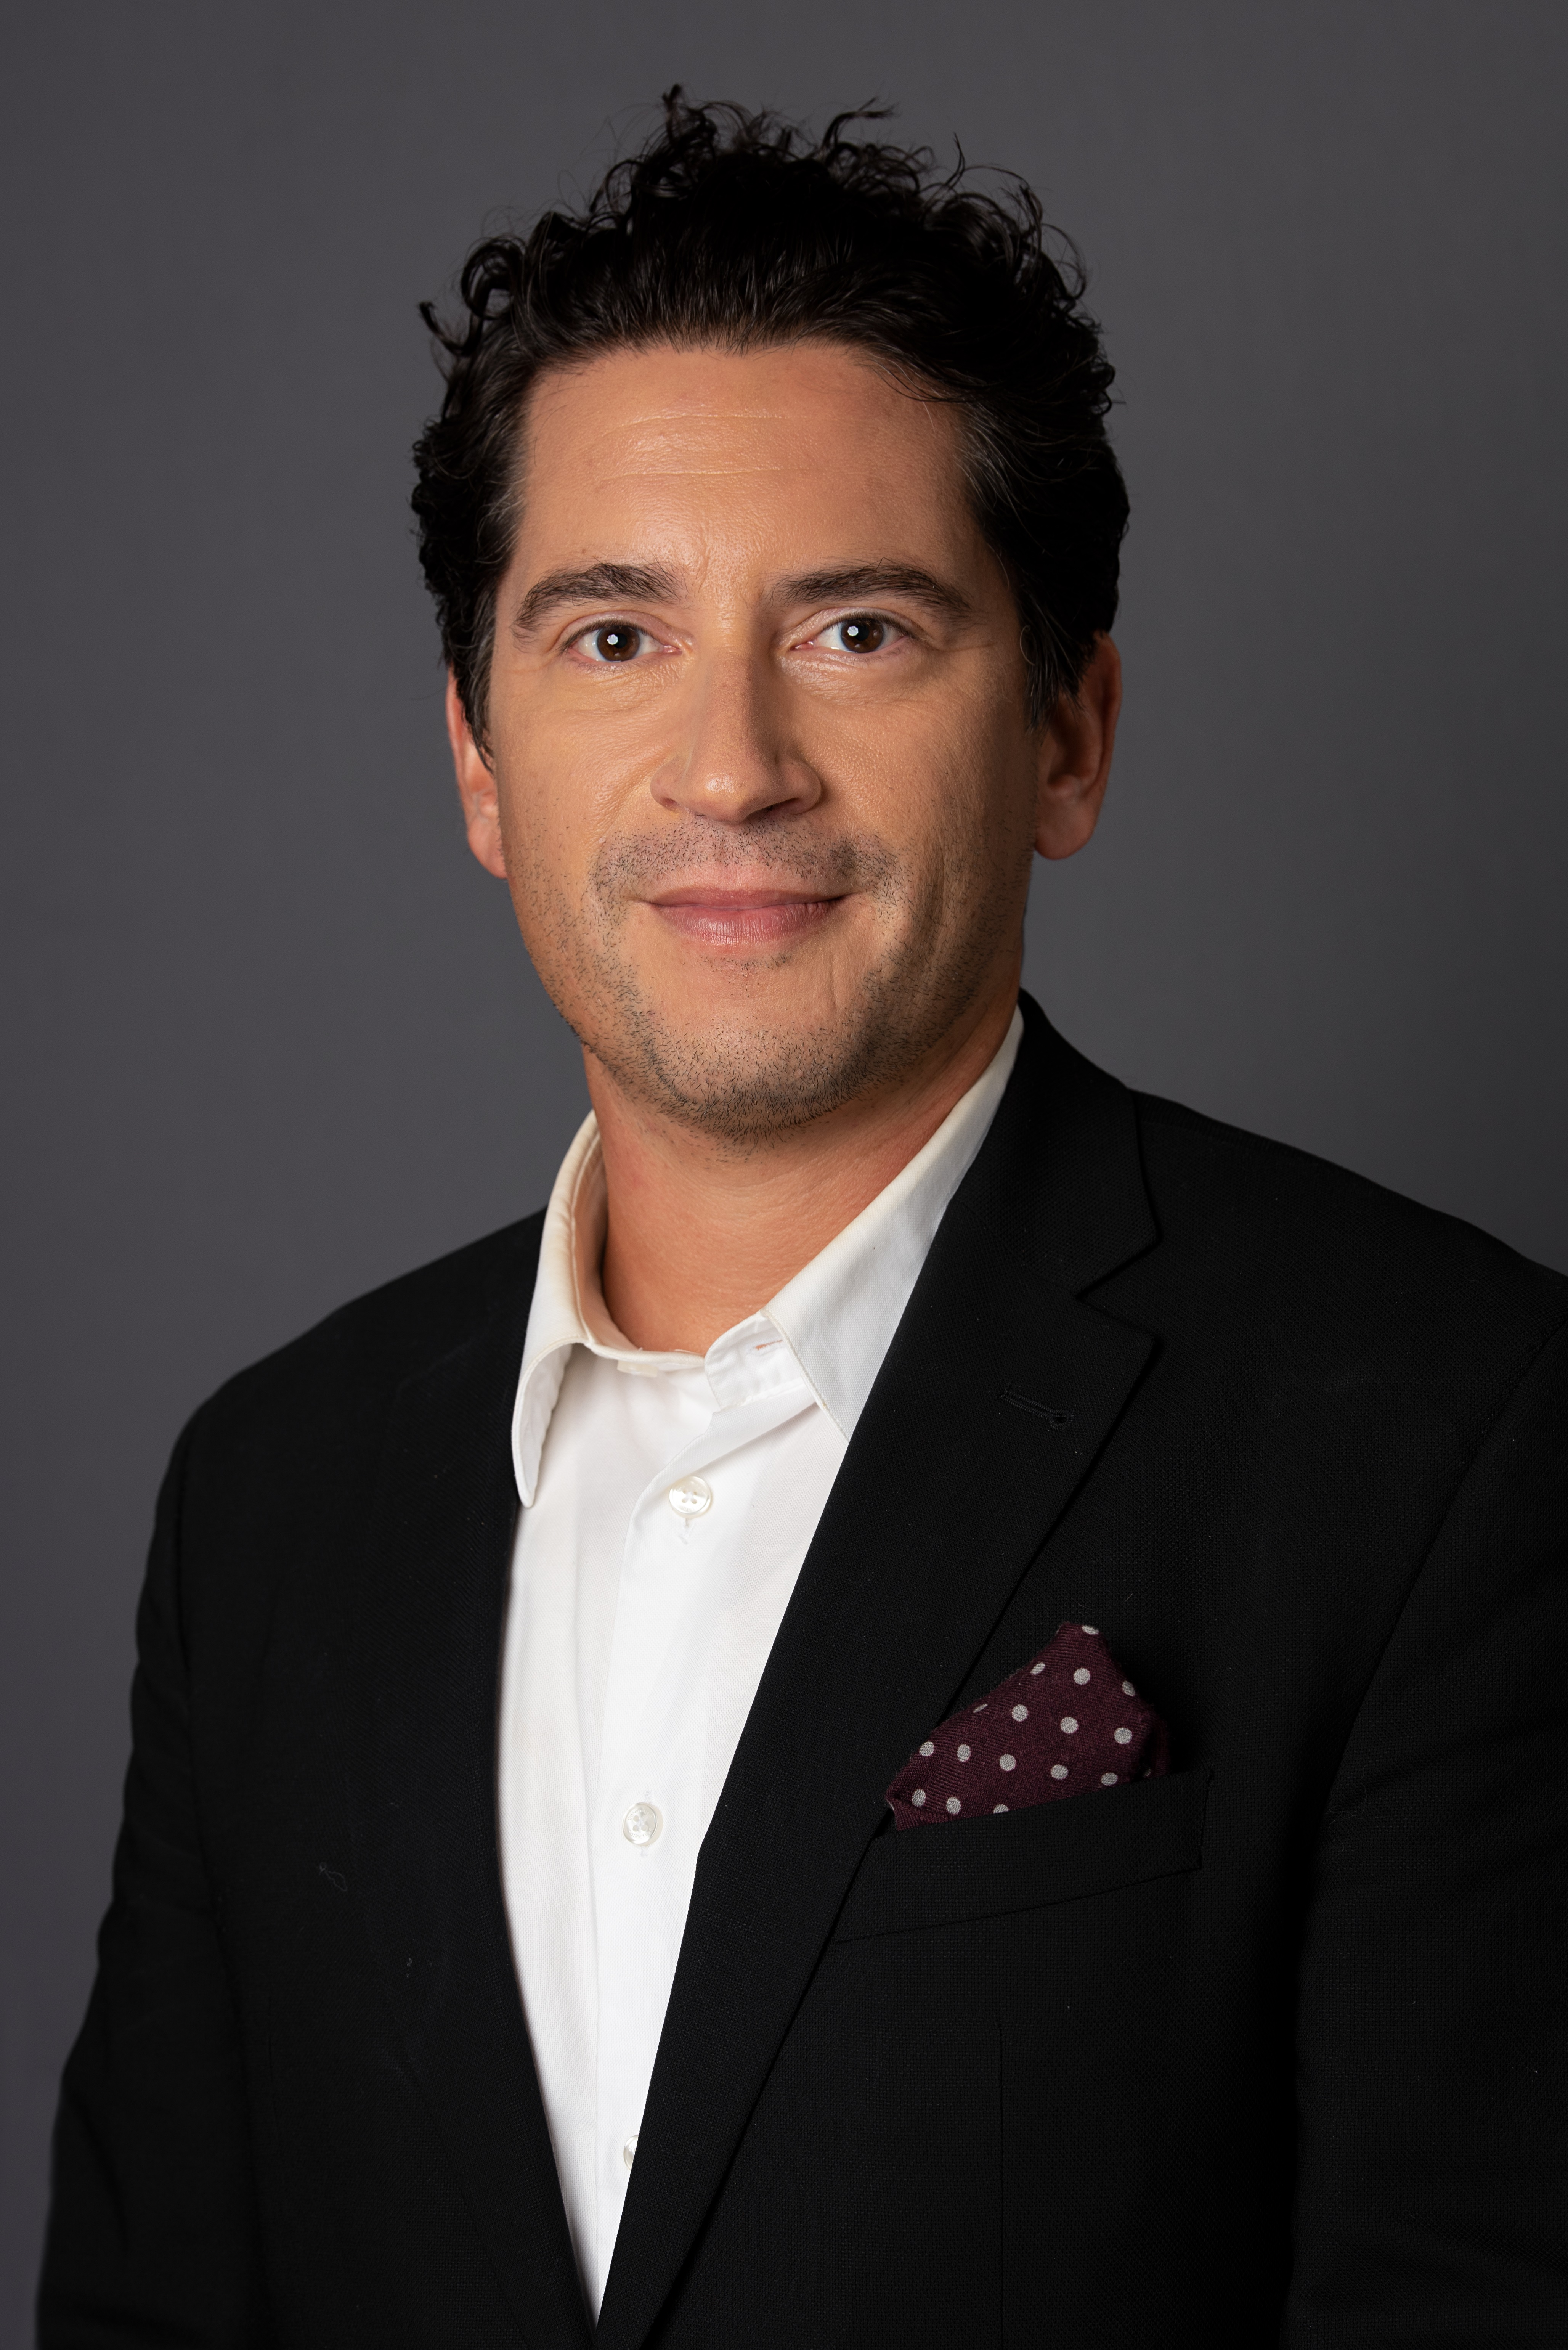 headshot of Marco Salcedo